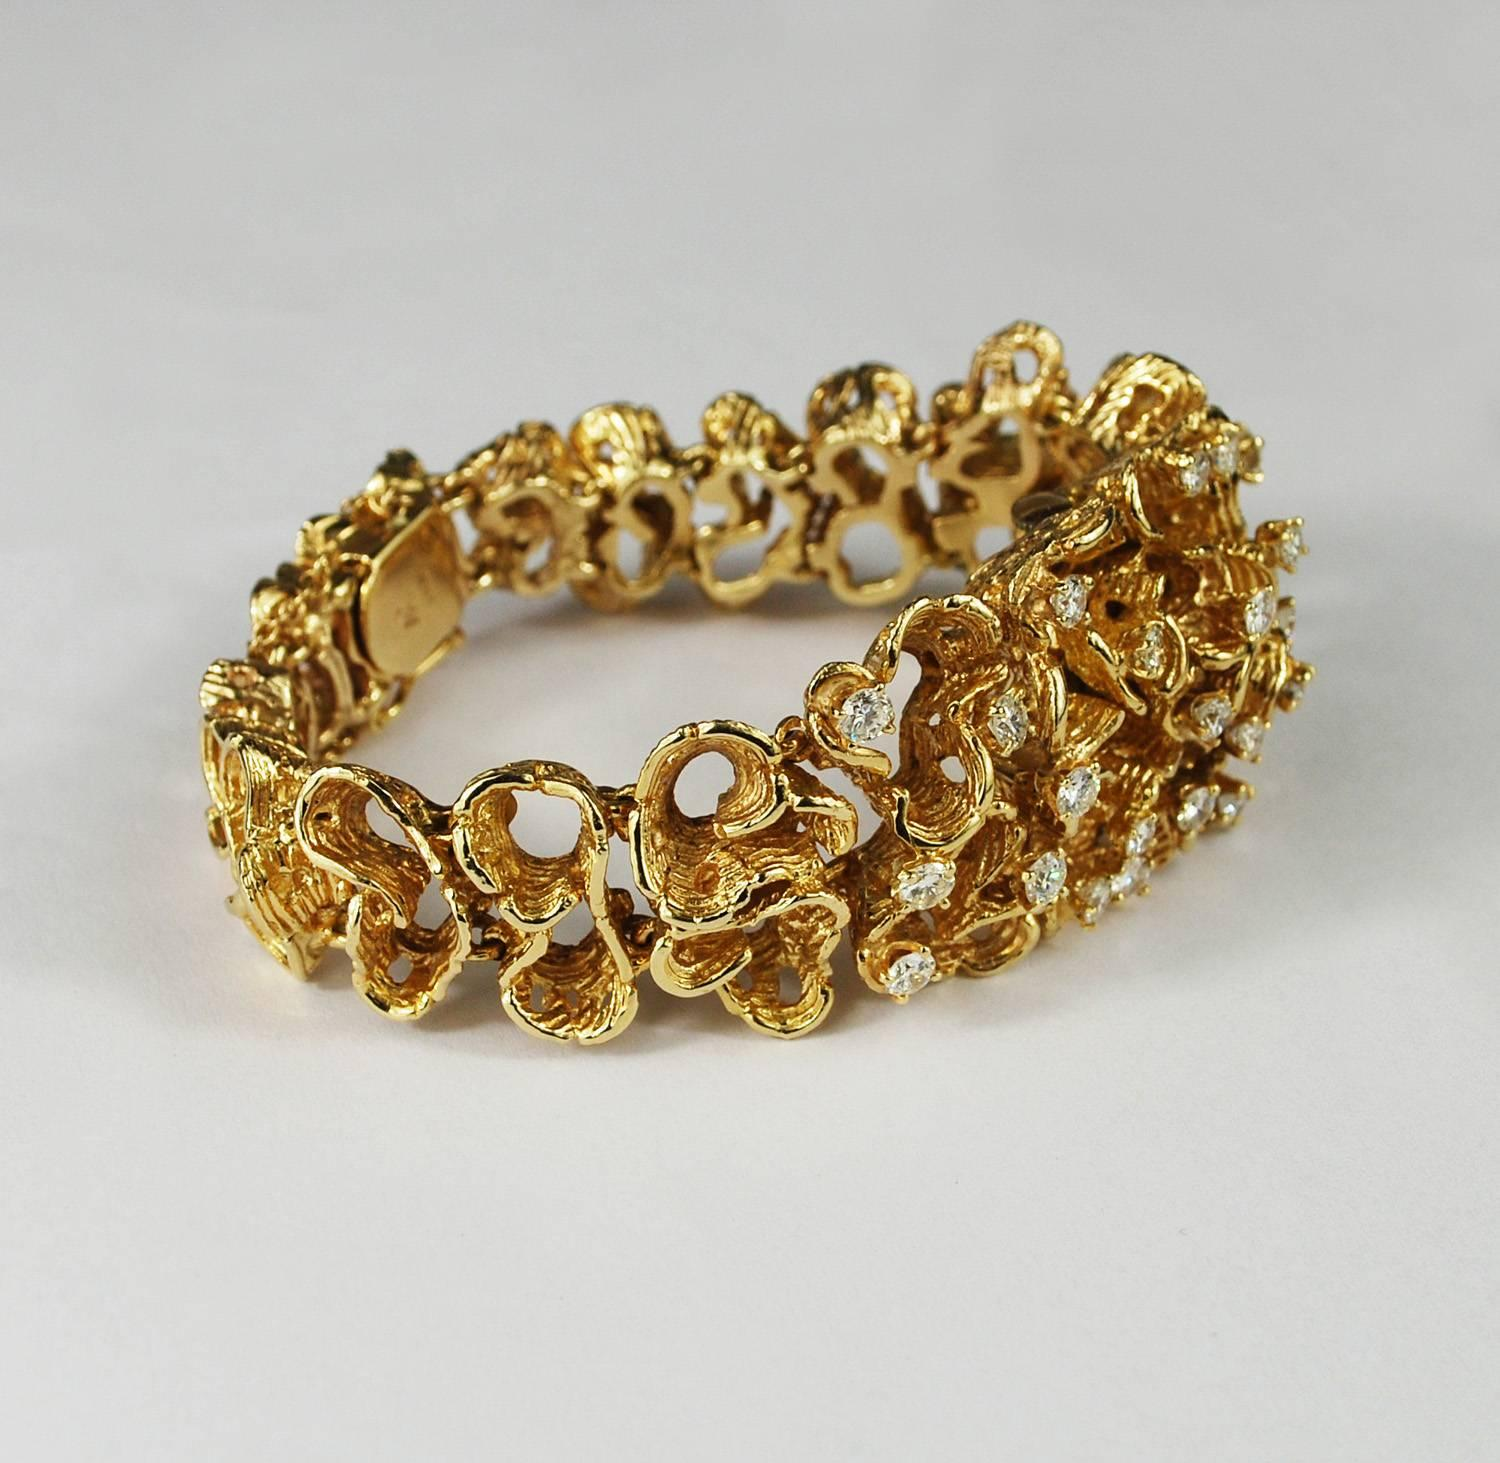 dream gold jewelry rose pomellato tango bracelet product diamond